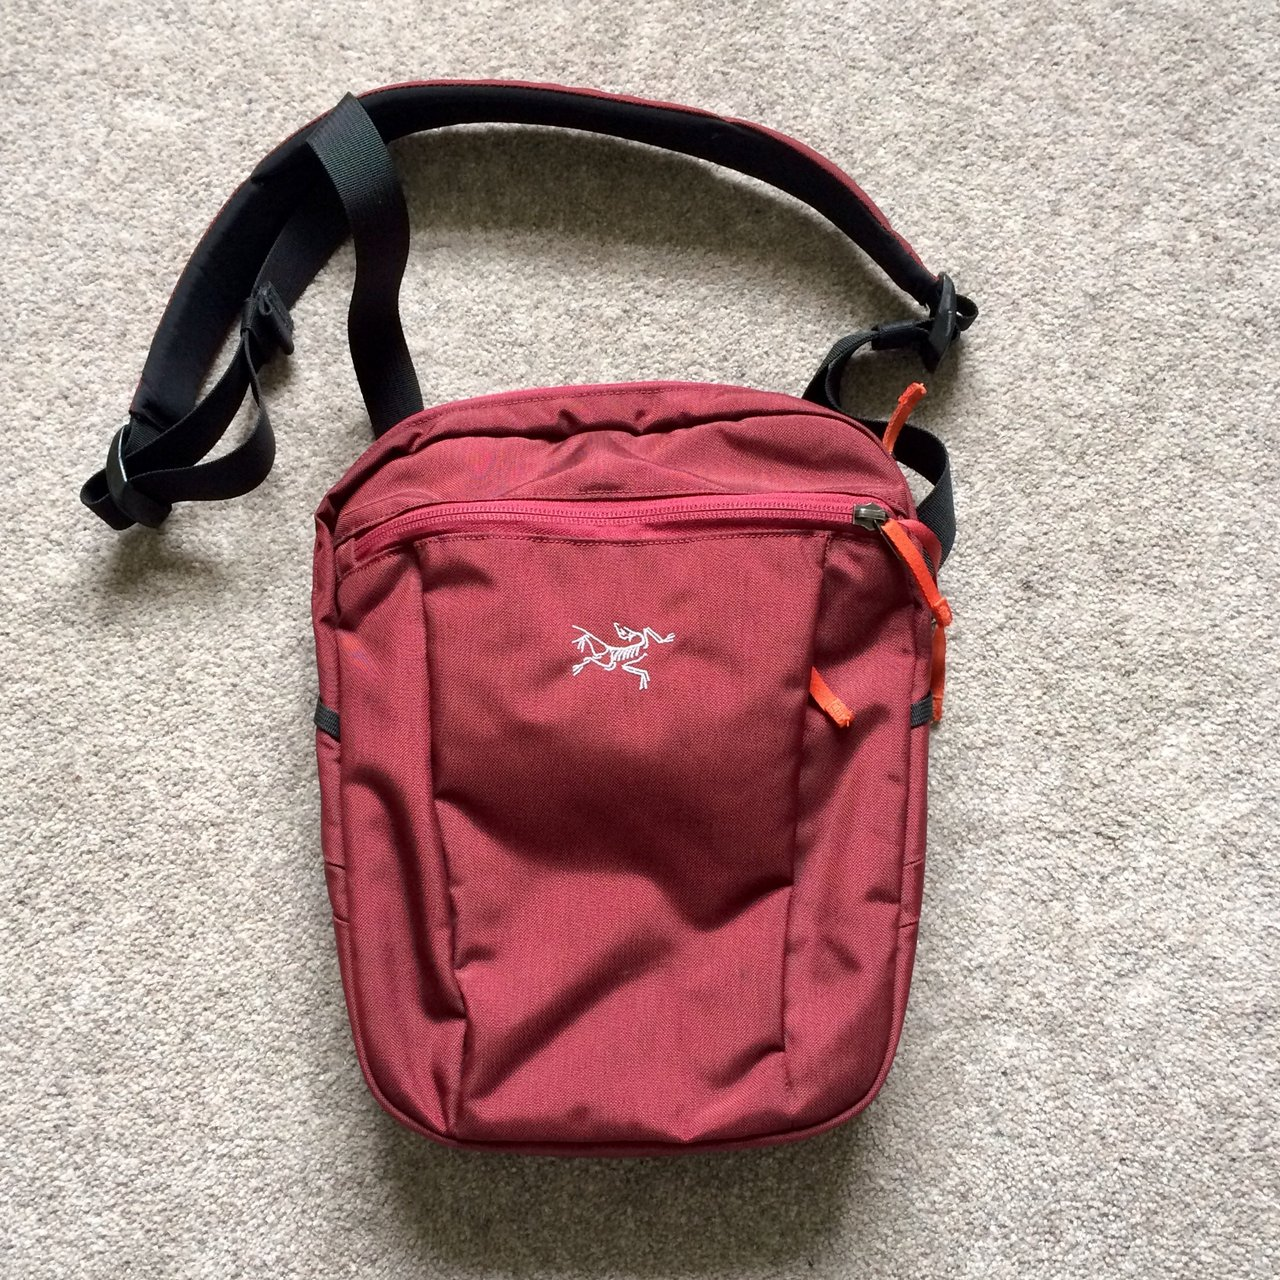 507bf8444d8f Red Arcteryx side bag - great condition only defect is small - Depop